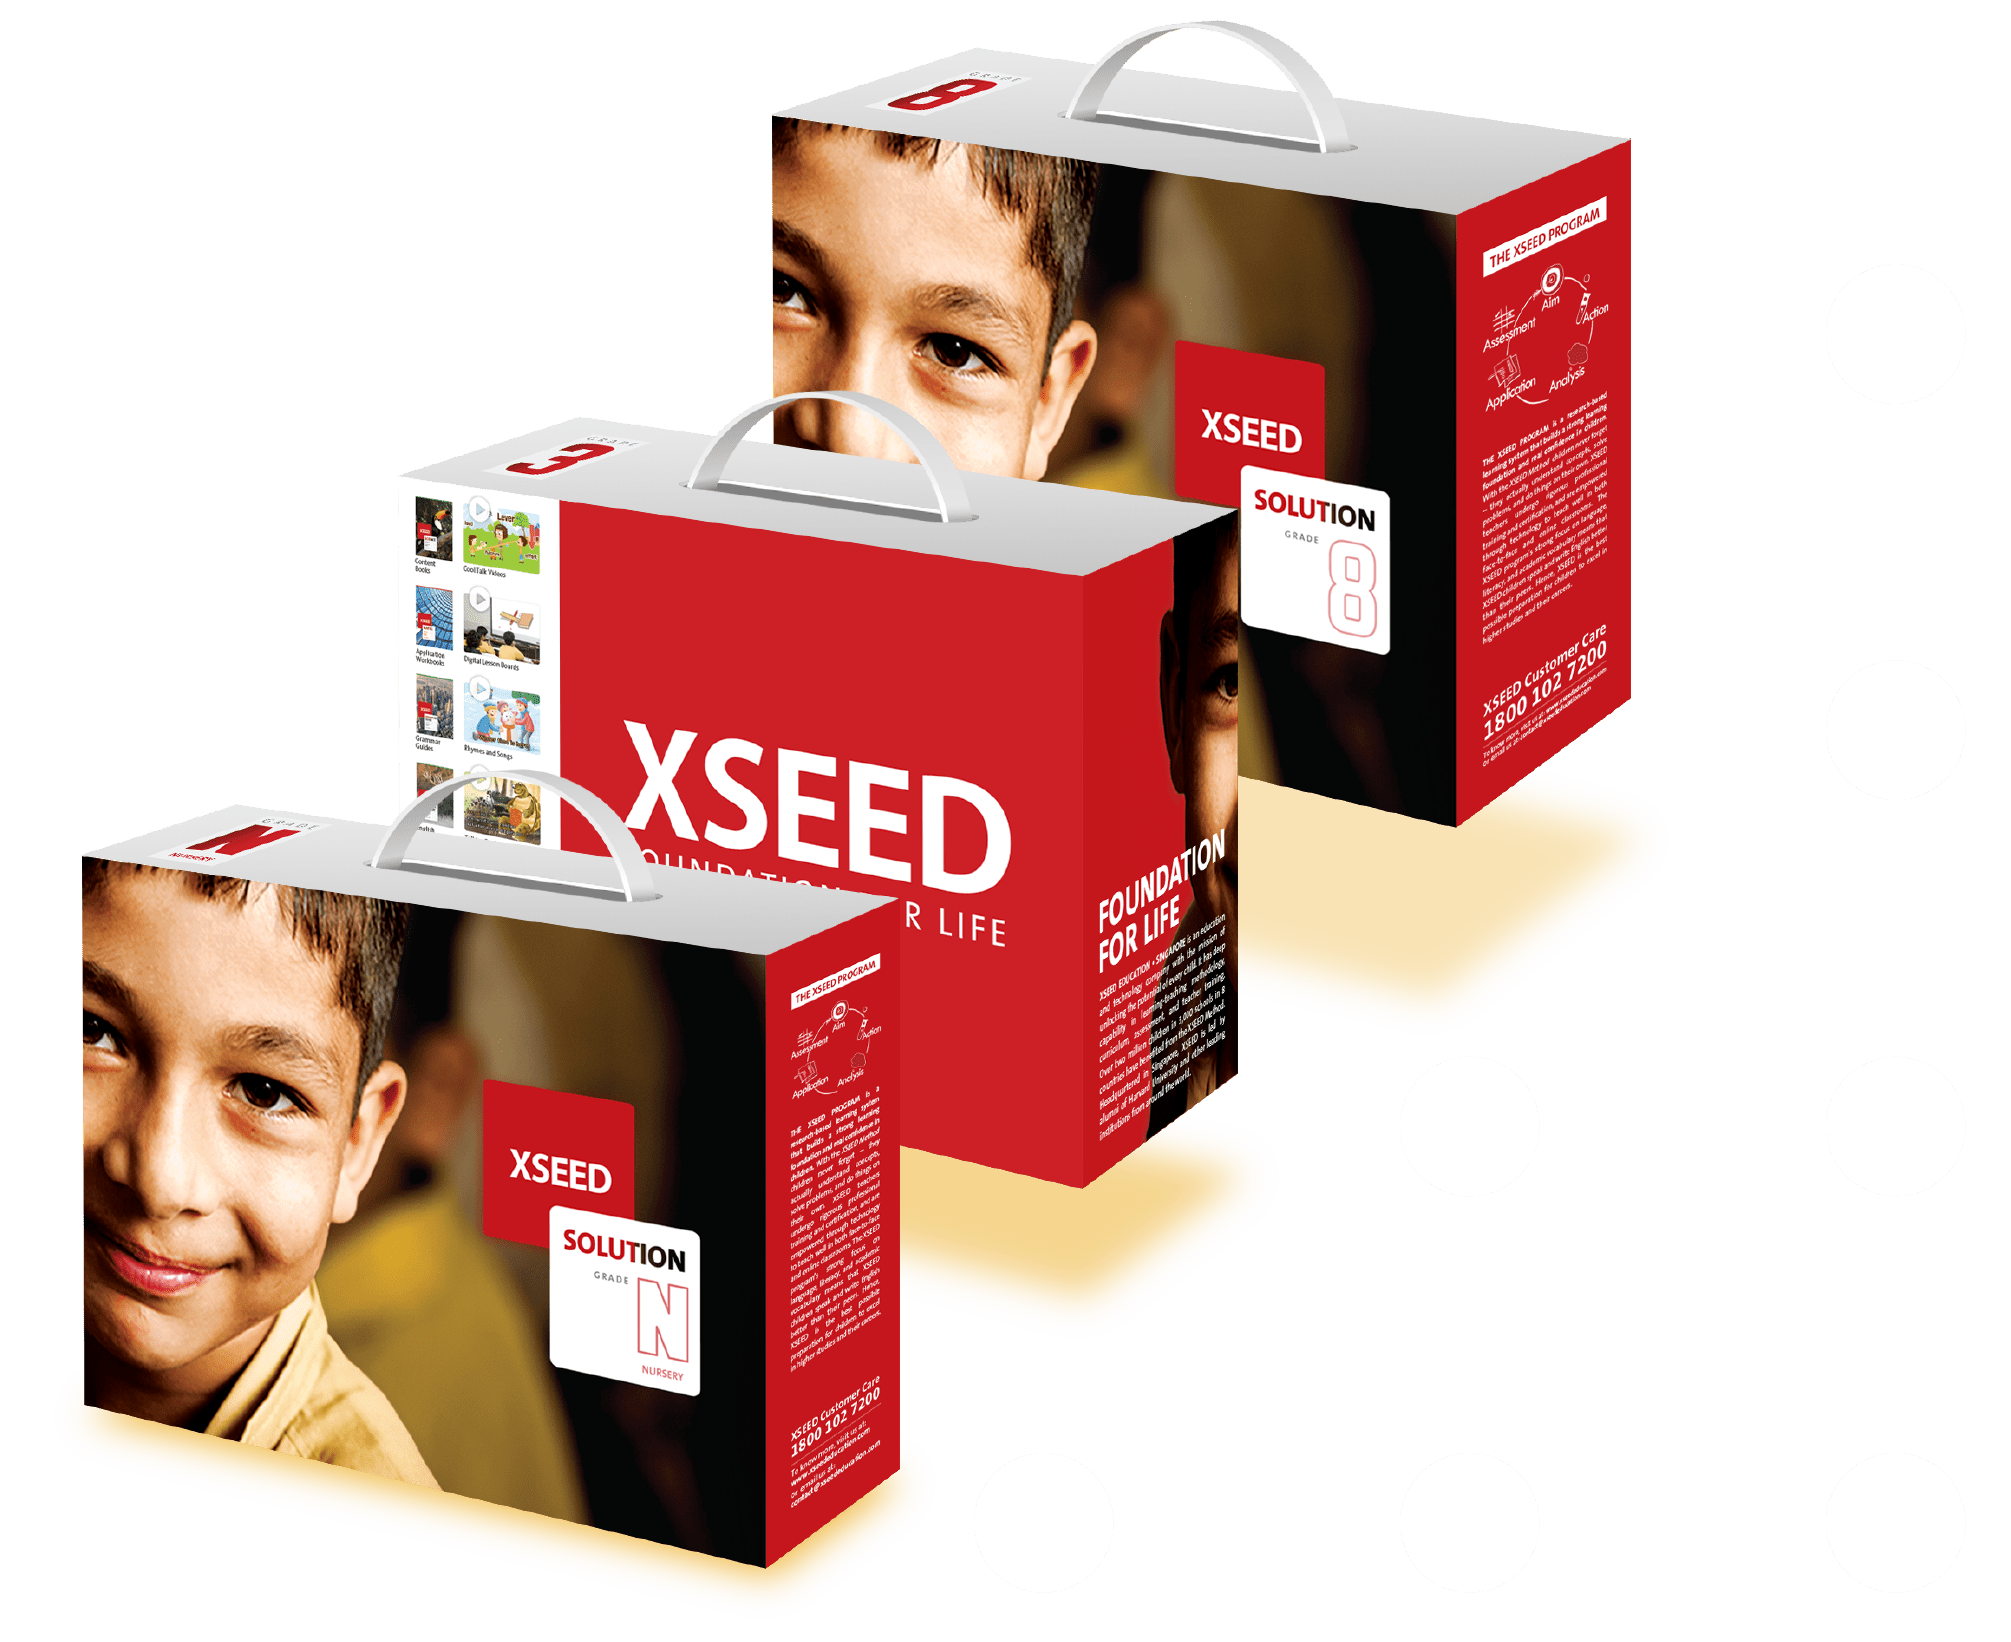 What is XSEED?